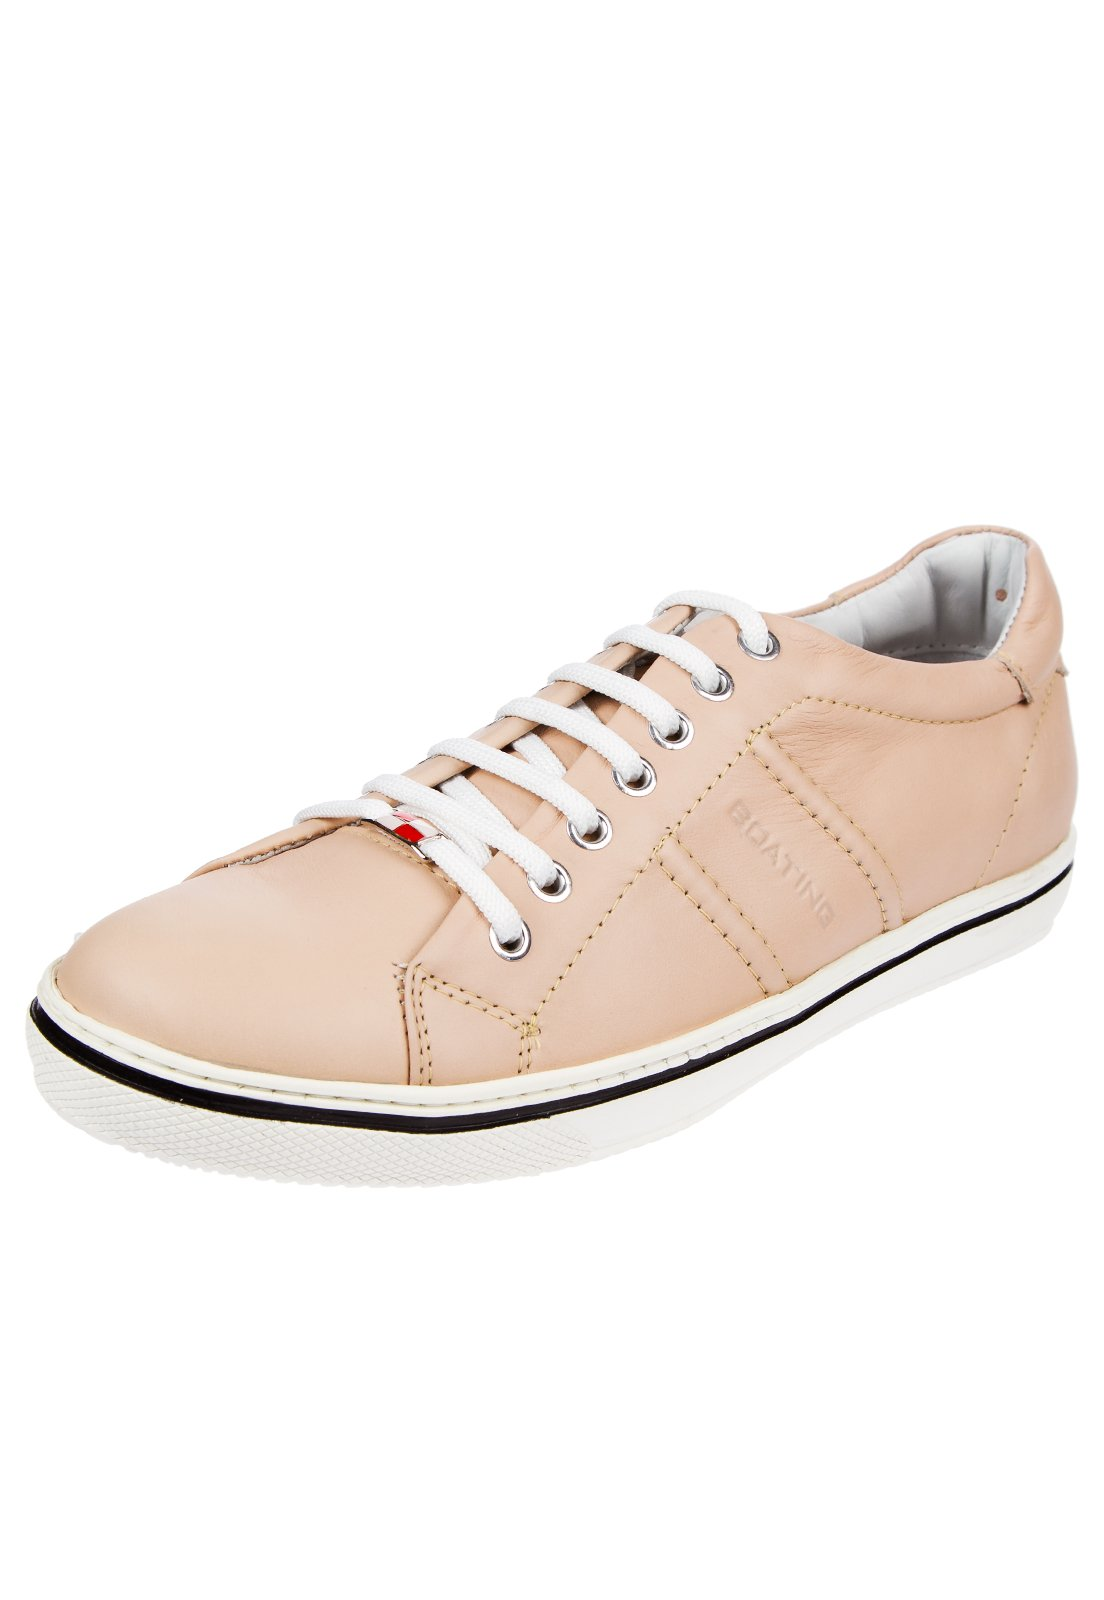 Zapatilla Beige Boating Vintage